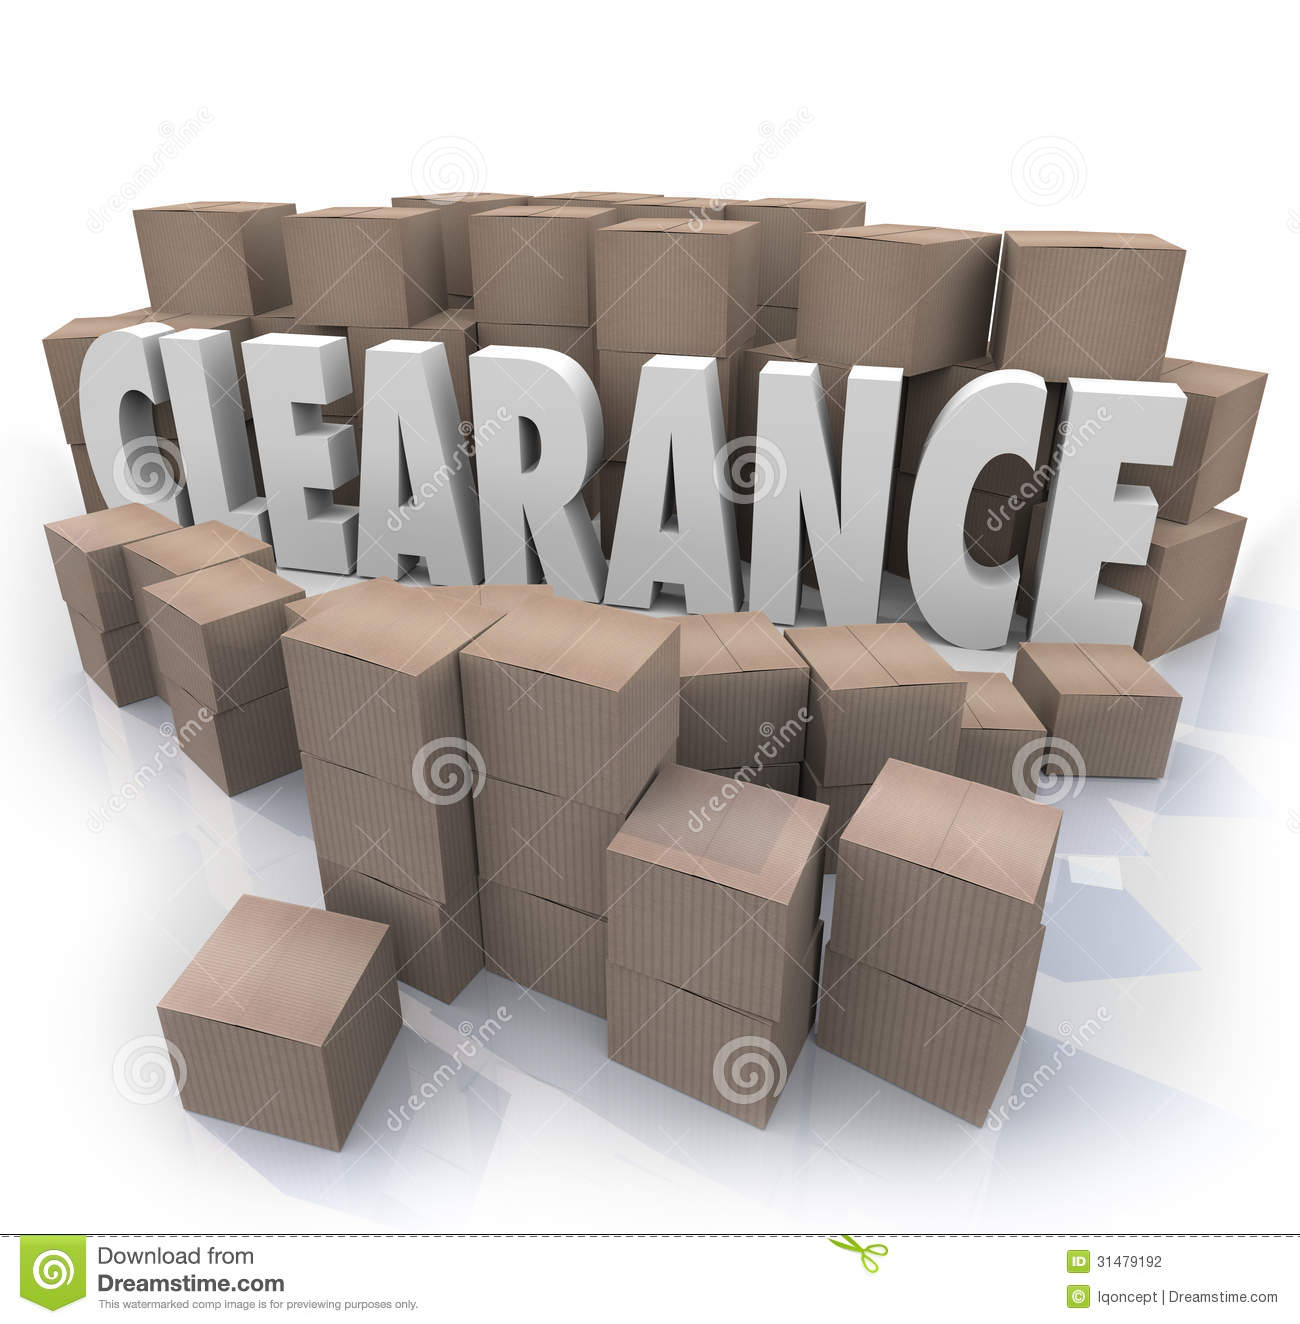 Clearance Sale Inventory Boxes Stockroom The Word Surrounded By Cardboard And Packages In